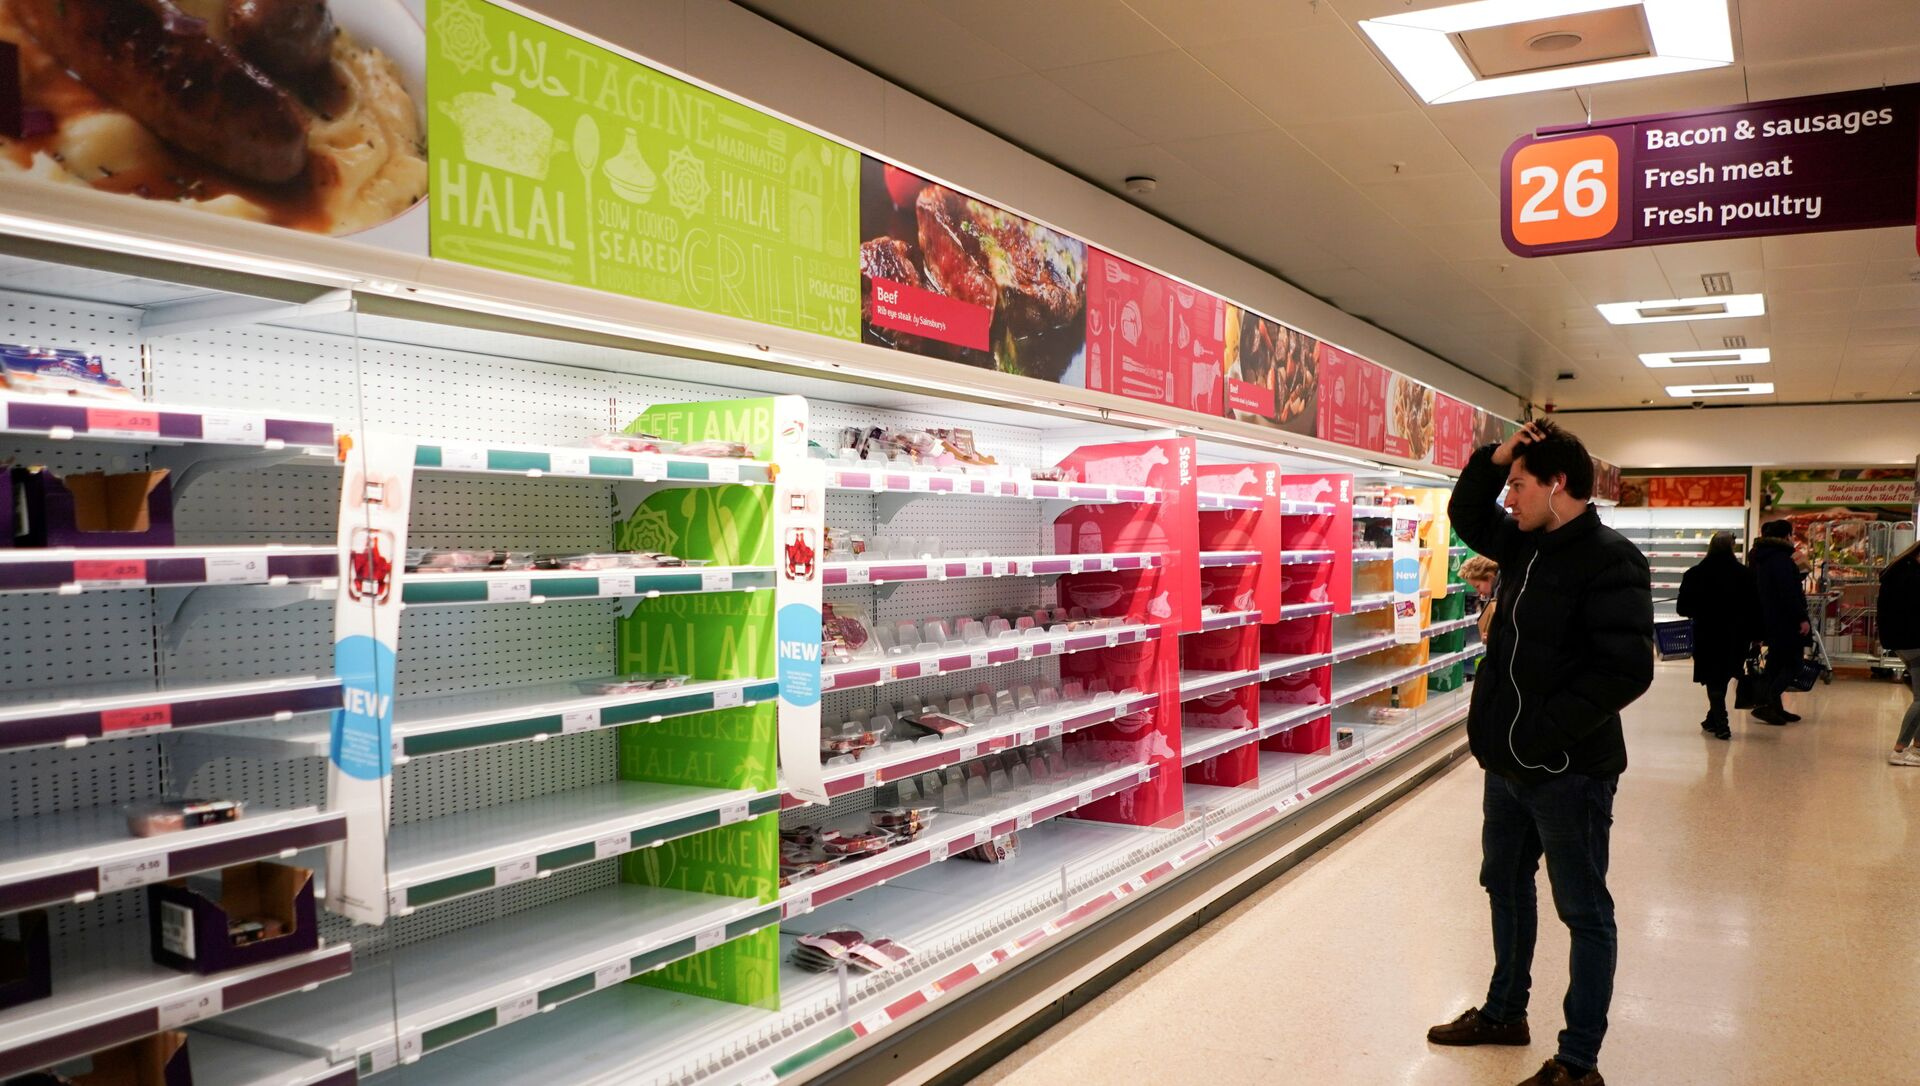 FILE PHOTO: A man stands next to shelves empty of fresh meat in a supermarket, as the number of worldwide coronavirus cases continues to grow,  in London, Britain, March 15, 2020 - Sputnik International, 1920, 24.07.2021